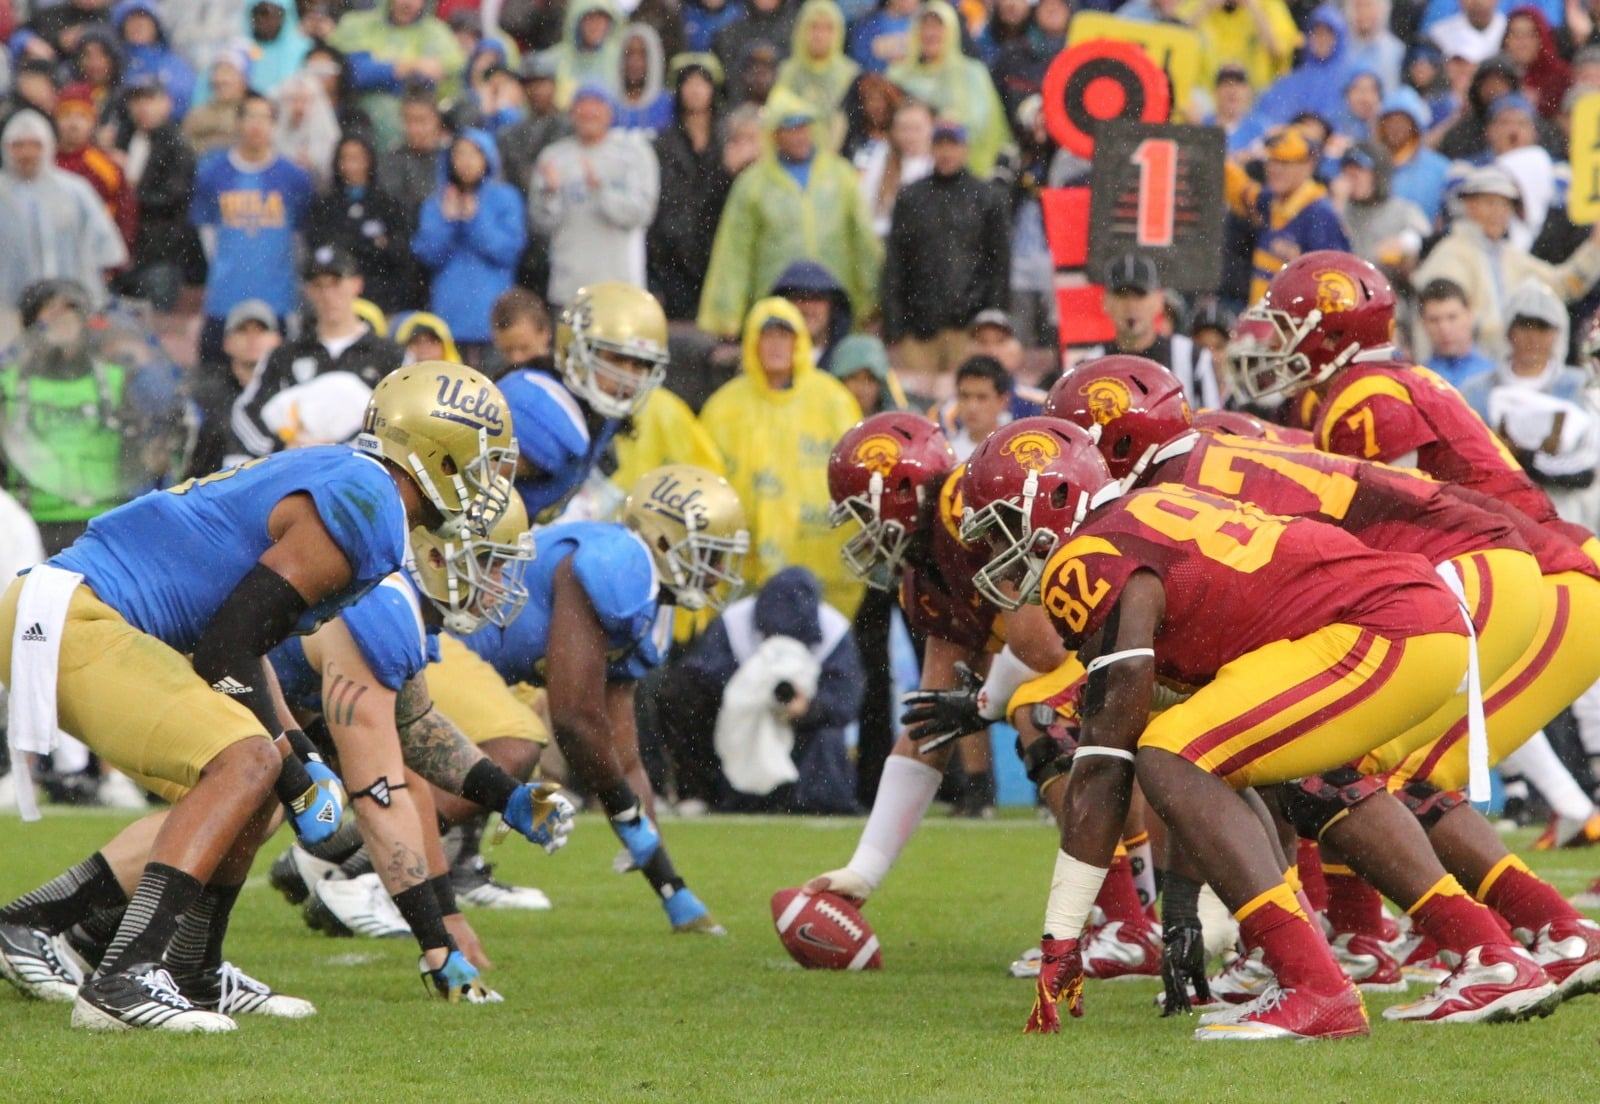 Top Five UCLA vs USC Football Games From the Last 25 Years